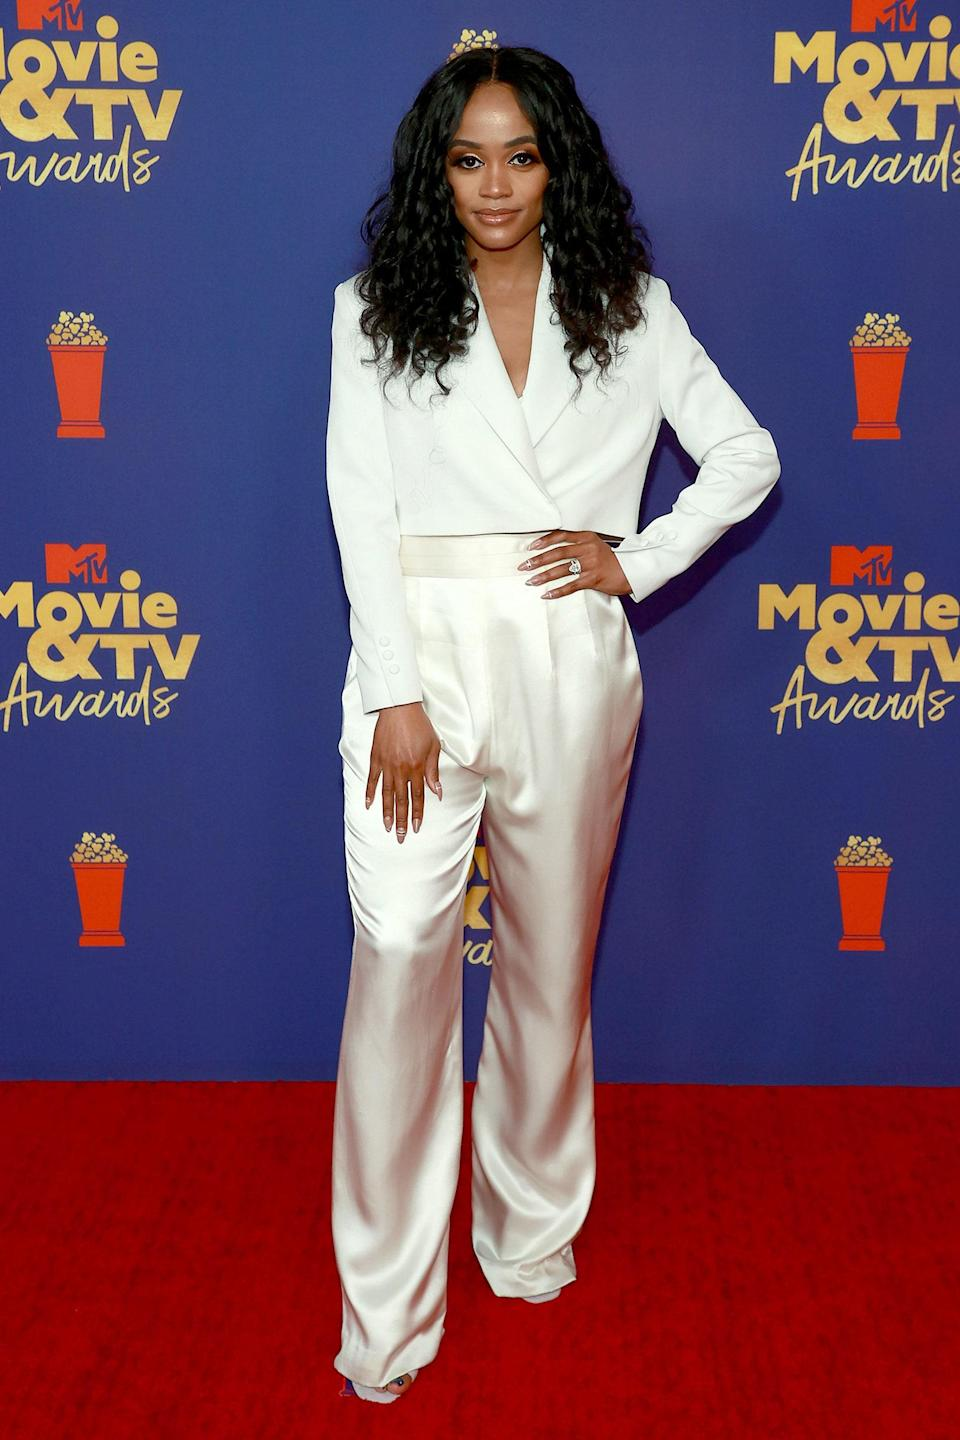 Former <em>Bachelorette</em> contestant Rachel Lindsay showed up in an elegant take on the pantsuit. She rocked a boxy cropped blazer with floor-length silk pants. She paired her classy monochrome look with a diamond ring and tousled curls.